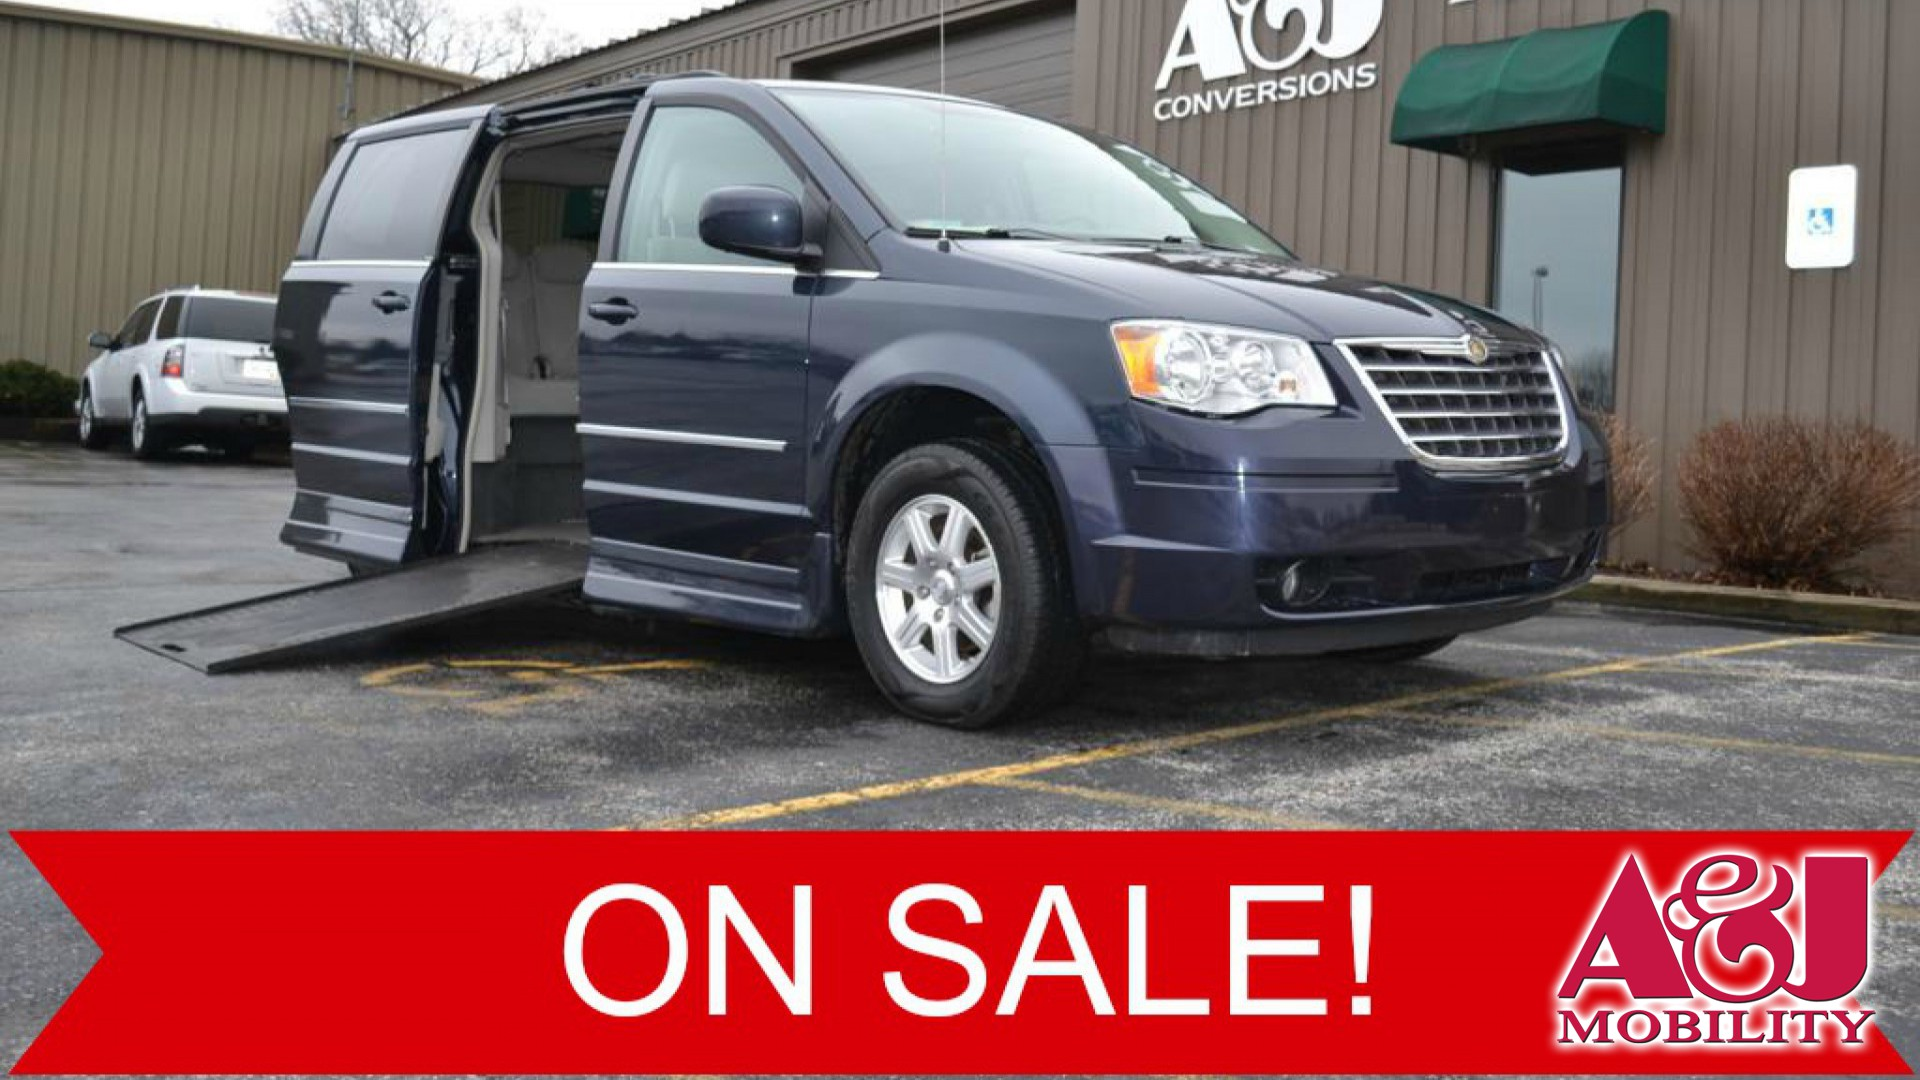 2009 chrysler town and country rollx vans rollx in floor chrysler wheelchair van for sale